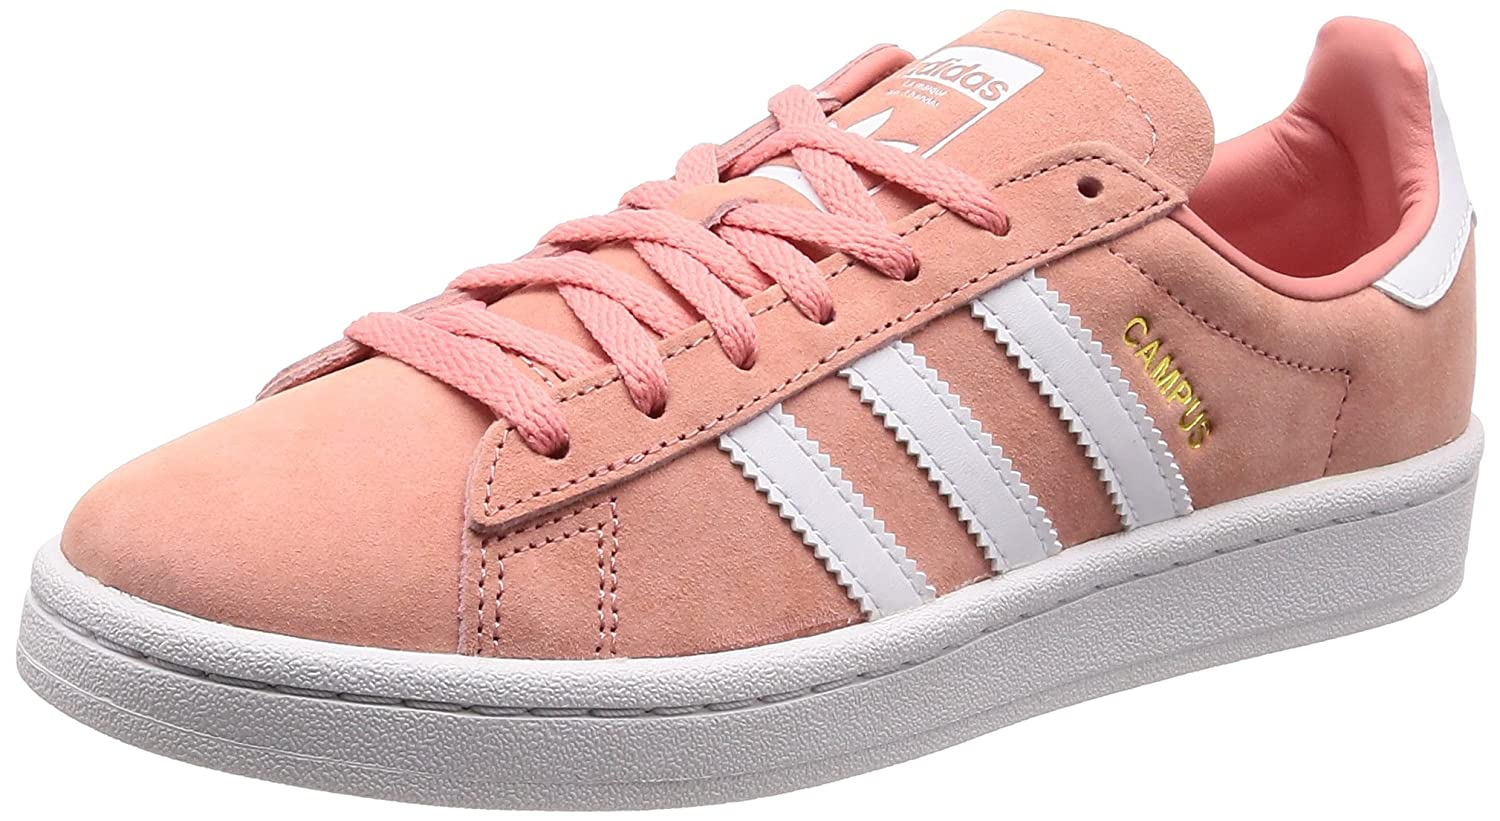 adidas Damen Campus W Gymnastikschuhe  37 1/3 EU|Pink (Tactile Rose F17/Ftwr White/Crystal White Tactile Rose F17/Ftwr White/Crystal White)